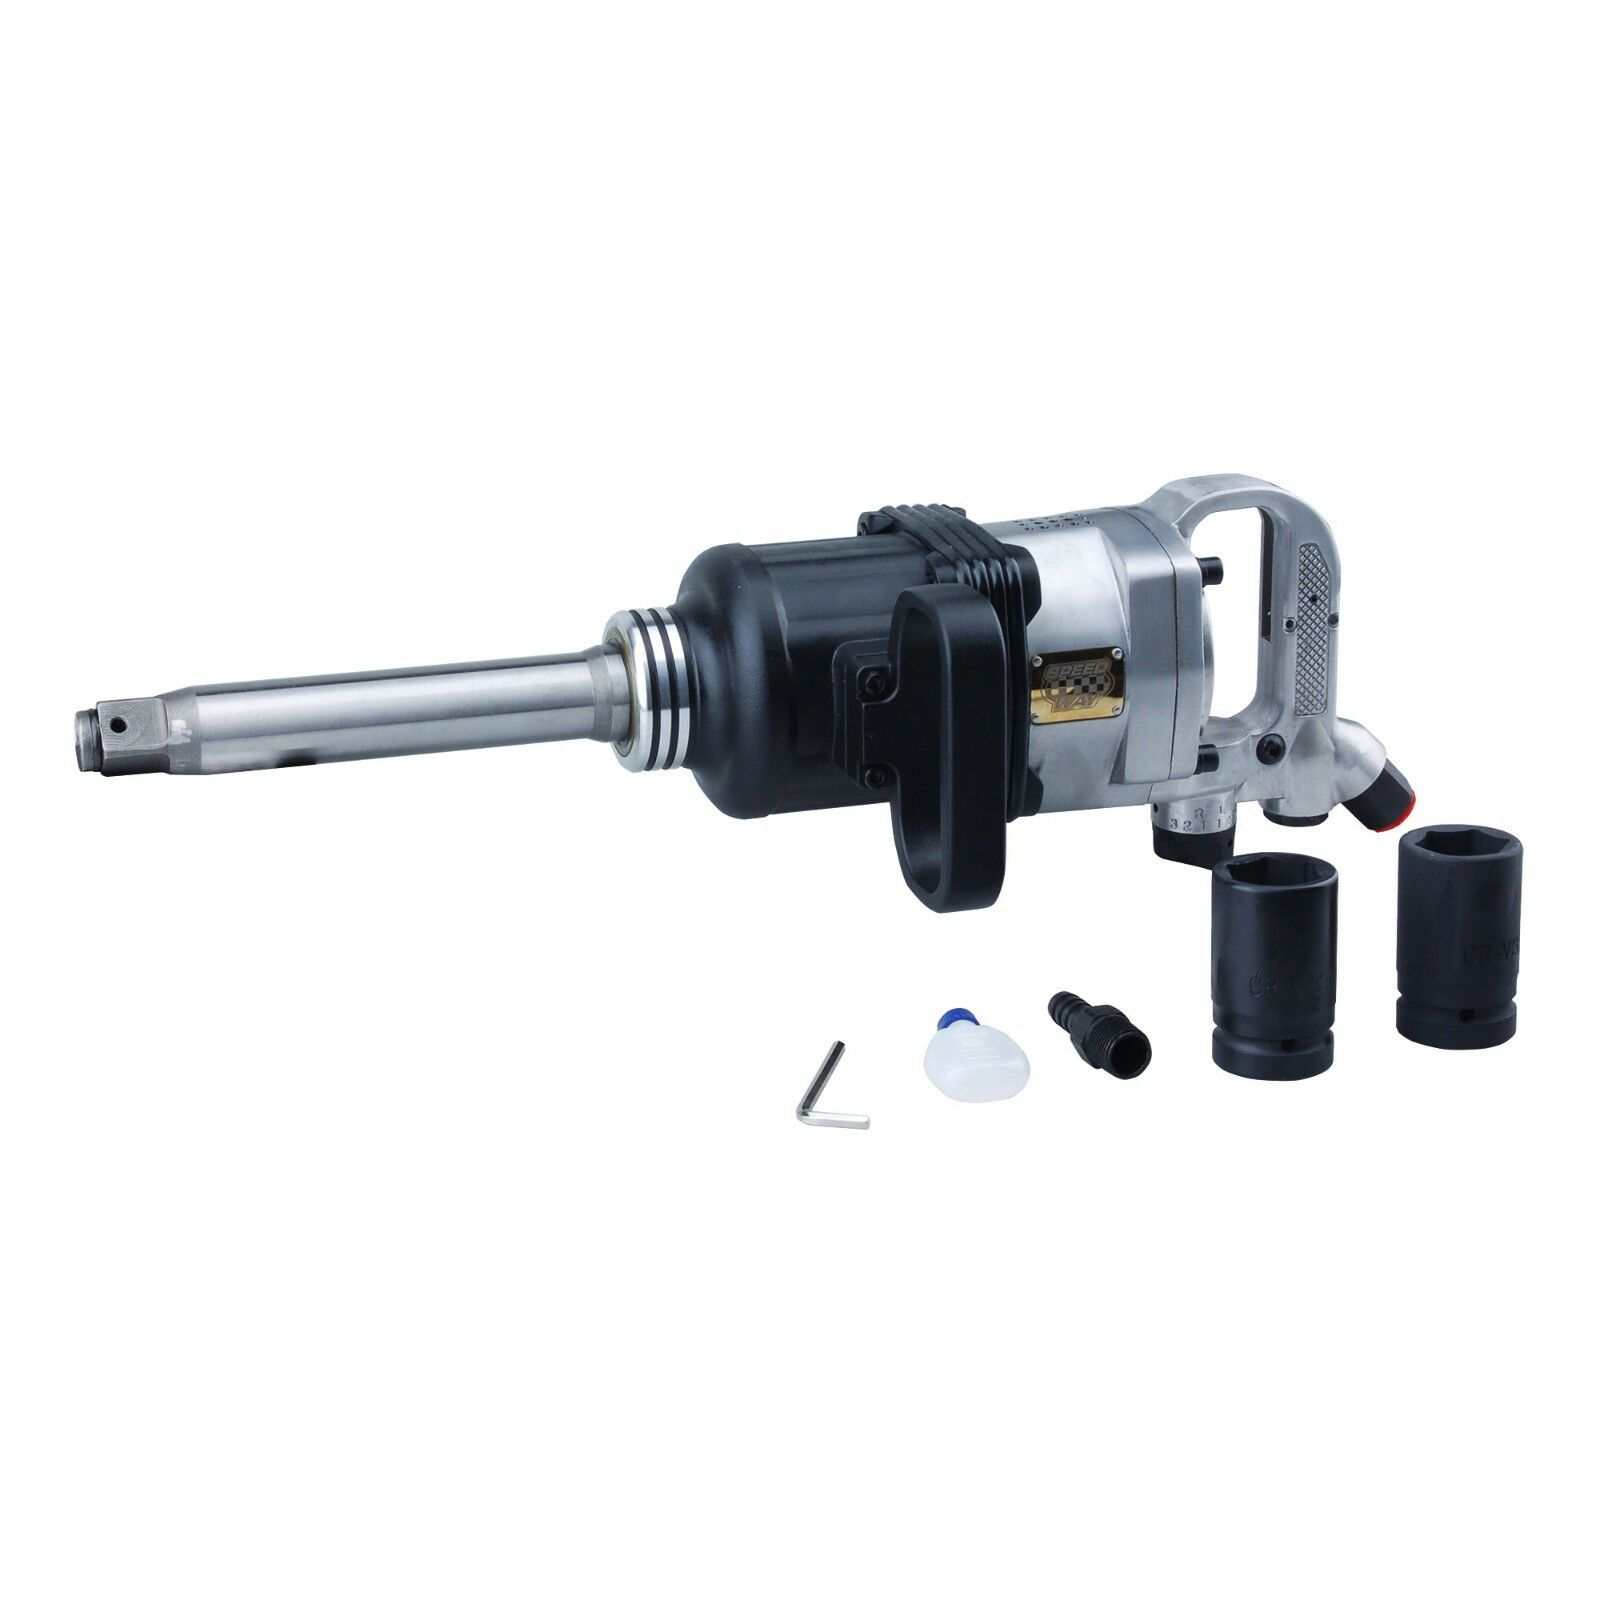 1 inch industrial pinless hammer impact wrench